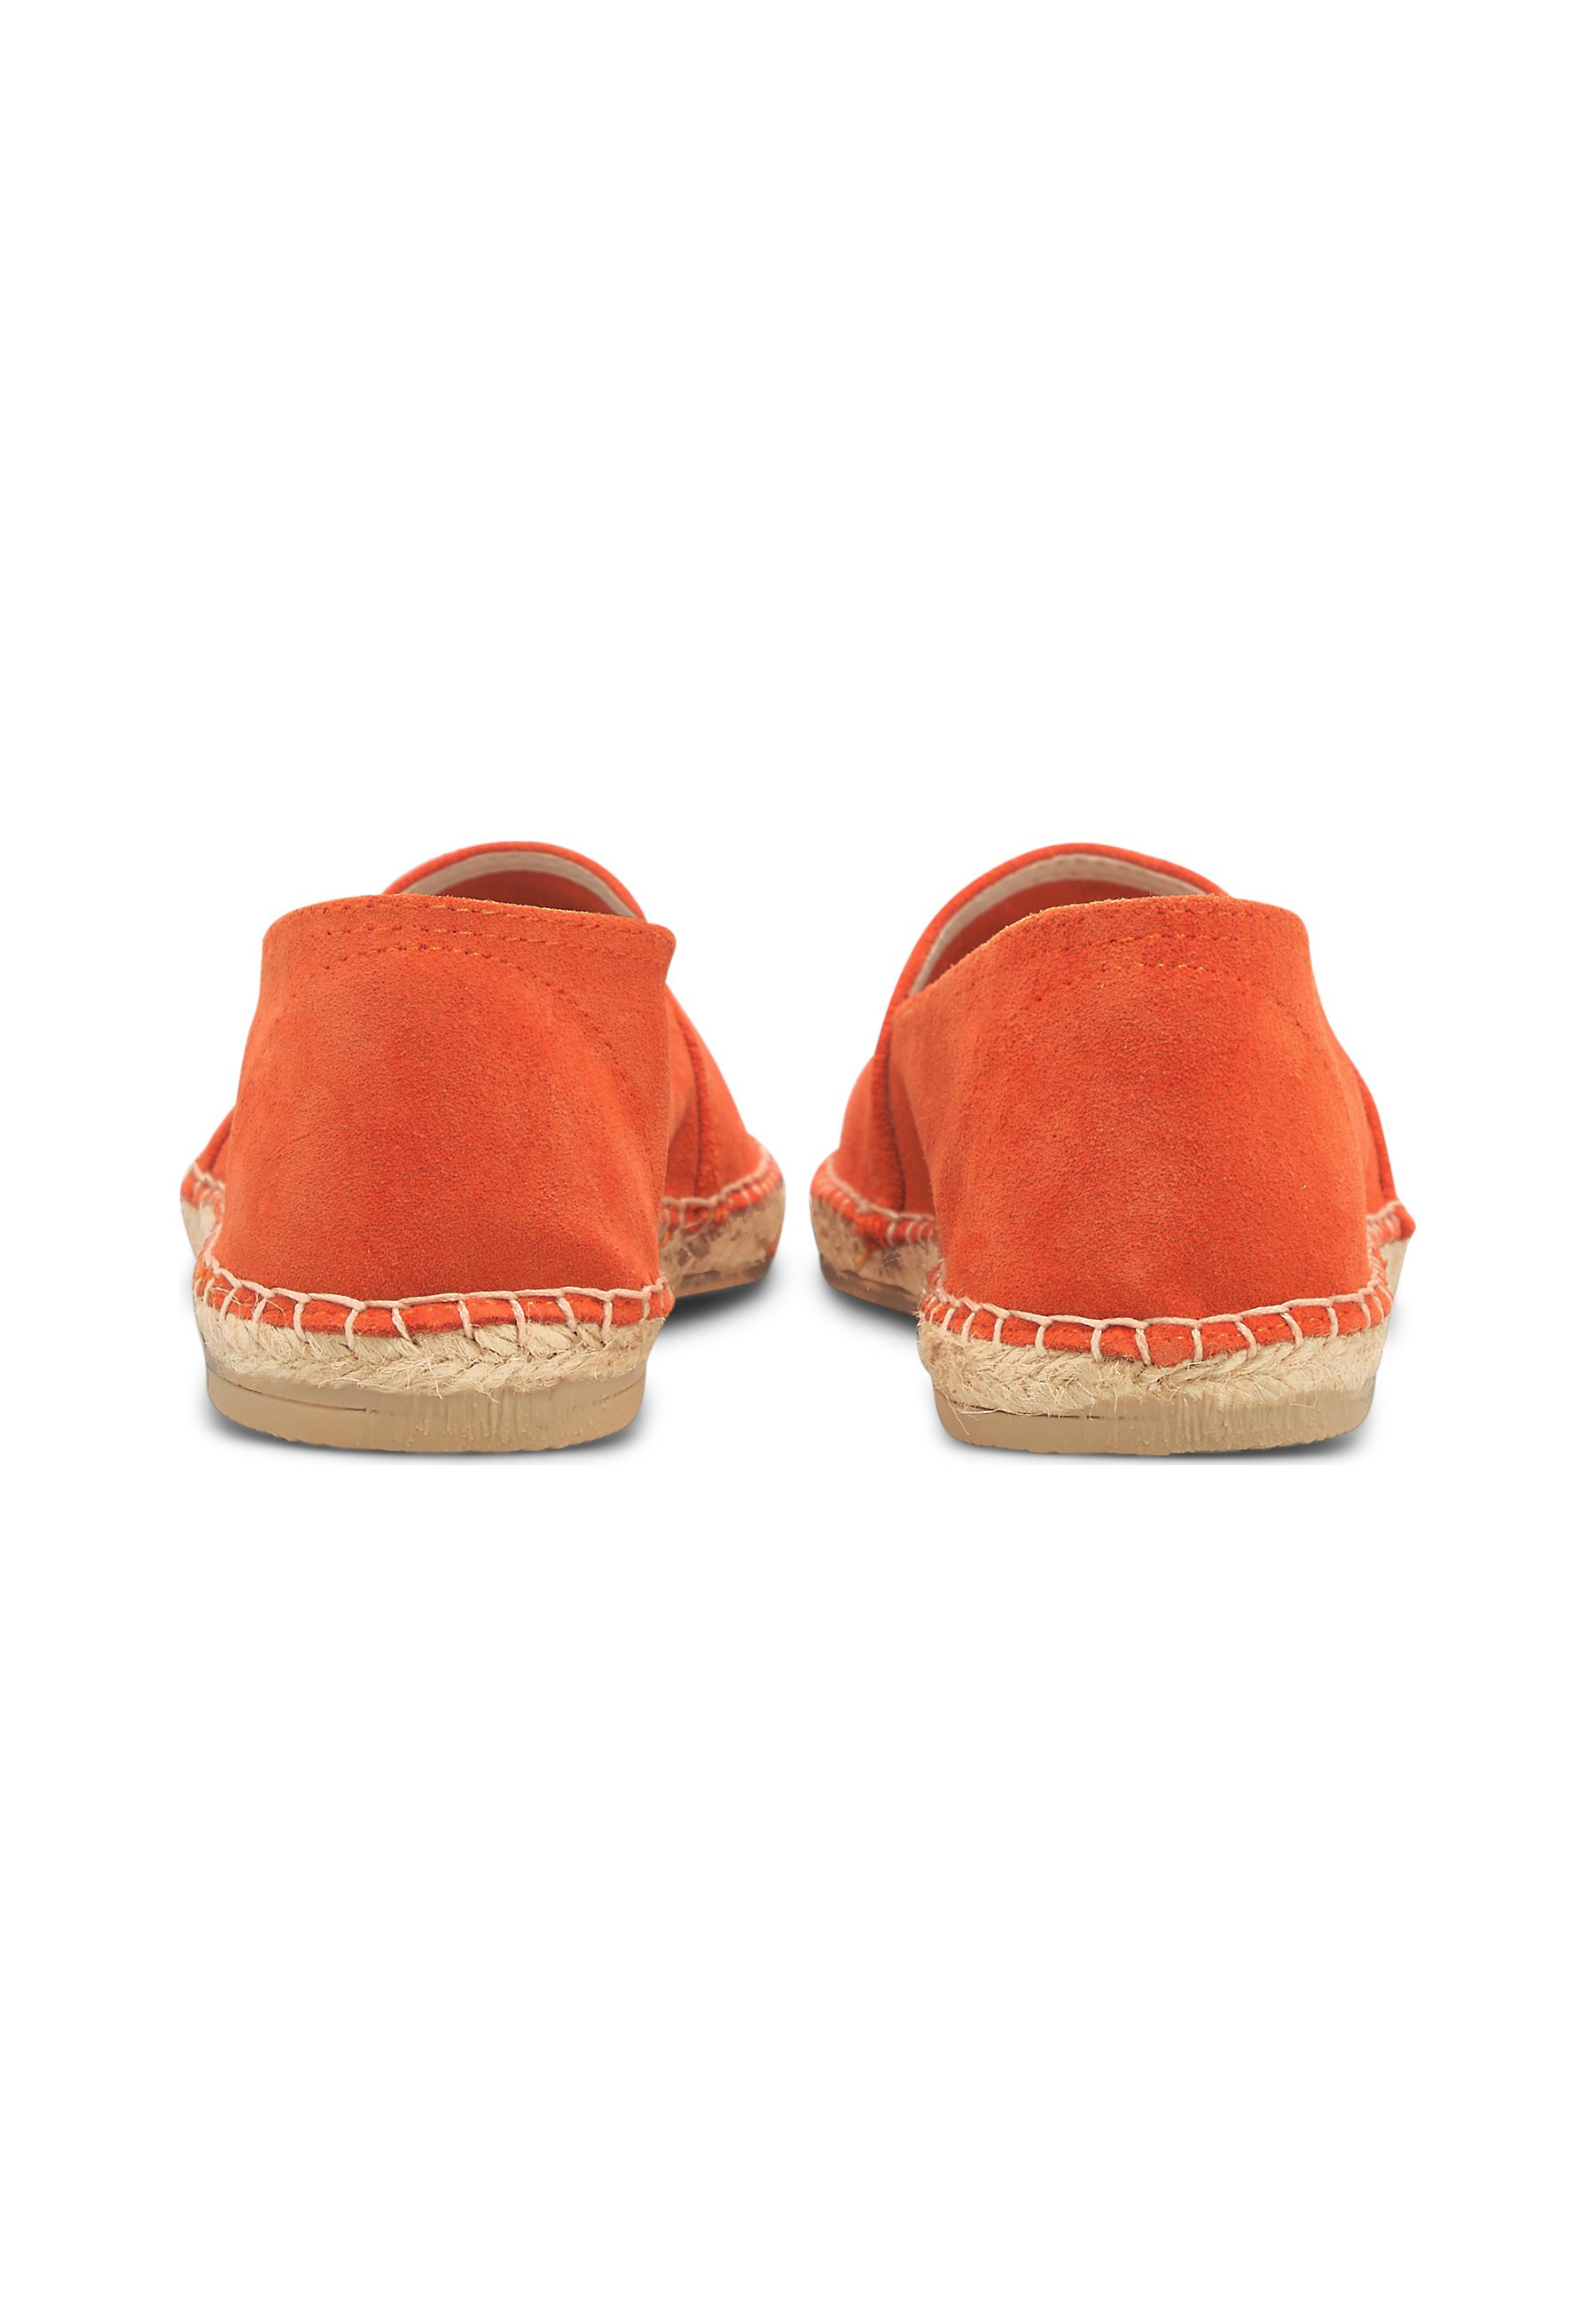 Scarpe da donna COX TREND Espadrillas orange